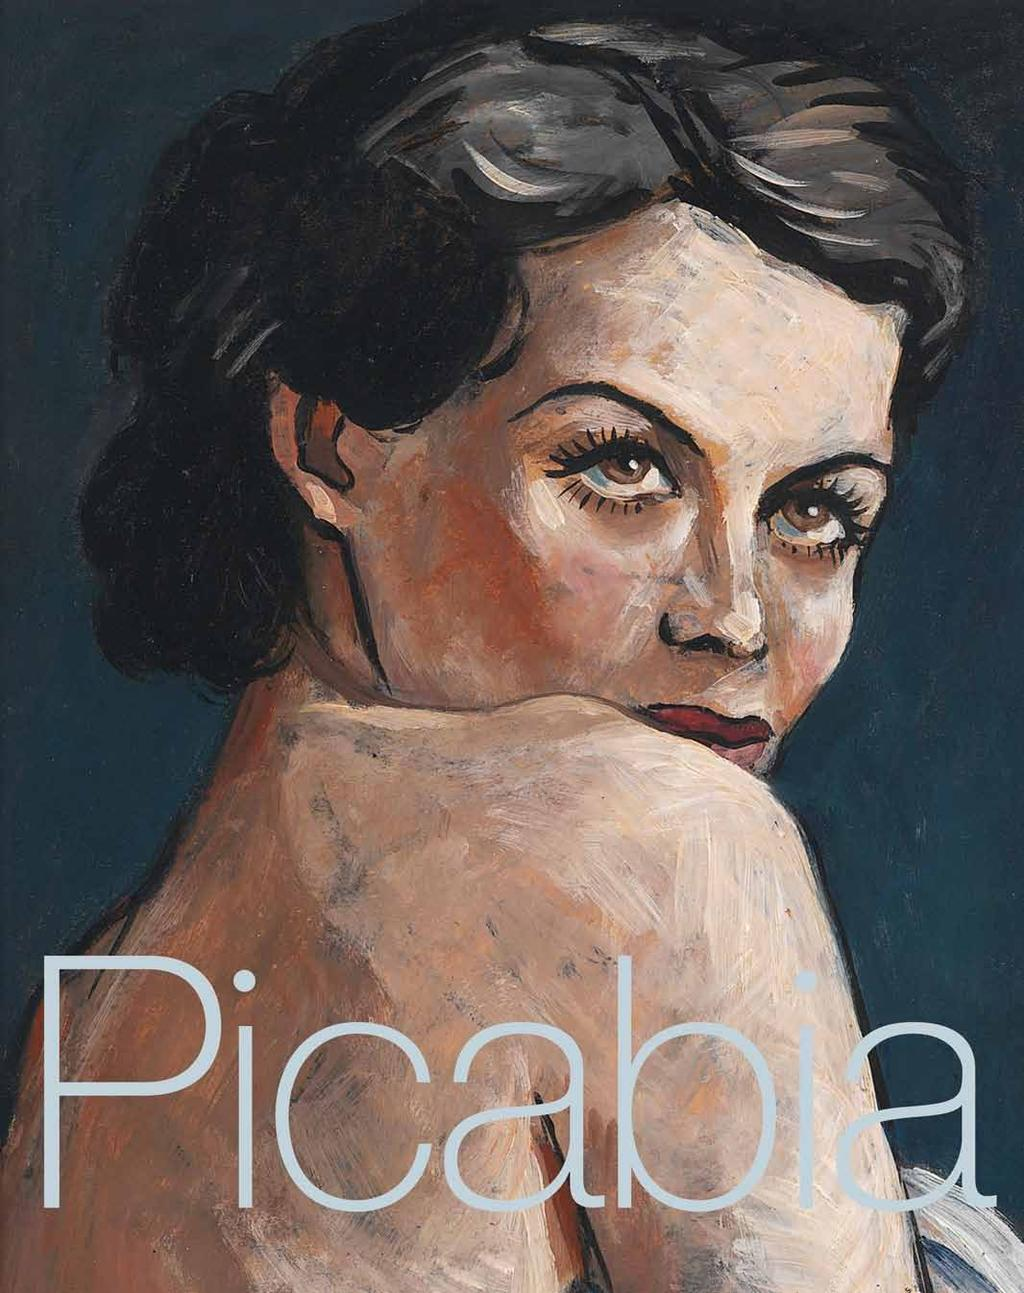 Francis Picabia Edited by Hans-Peter Wipplinger. Text by Stephanie Damianitsch, Zdenek Felix, Jean-Jacques Lebel, Rainer Metzger, Hans-Peter Wipplinger.